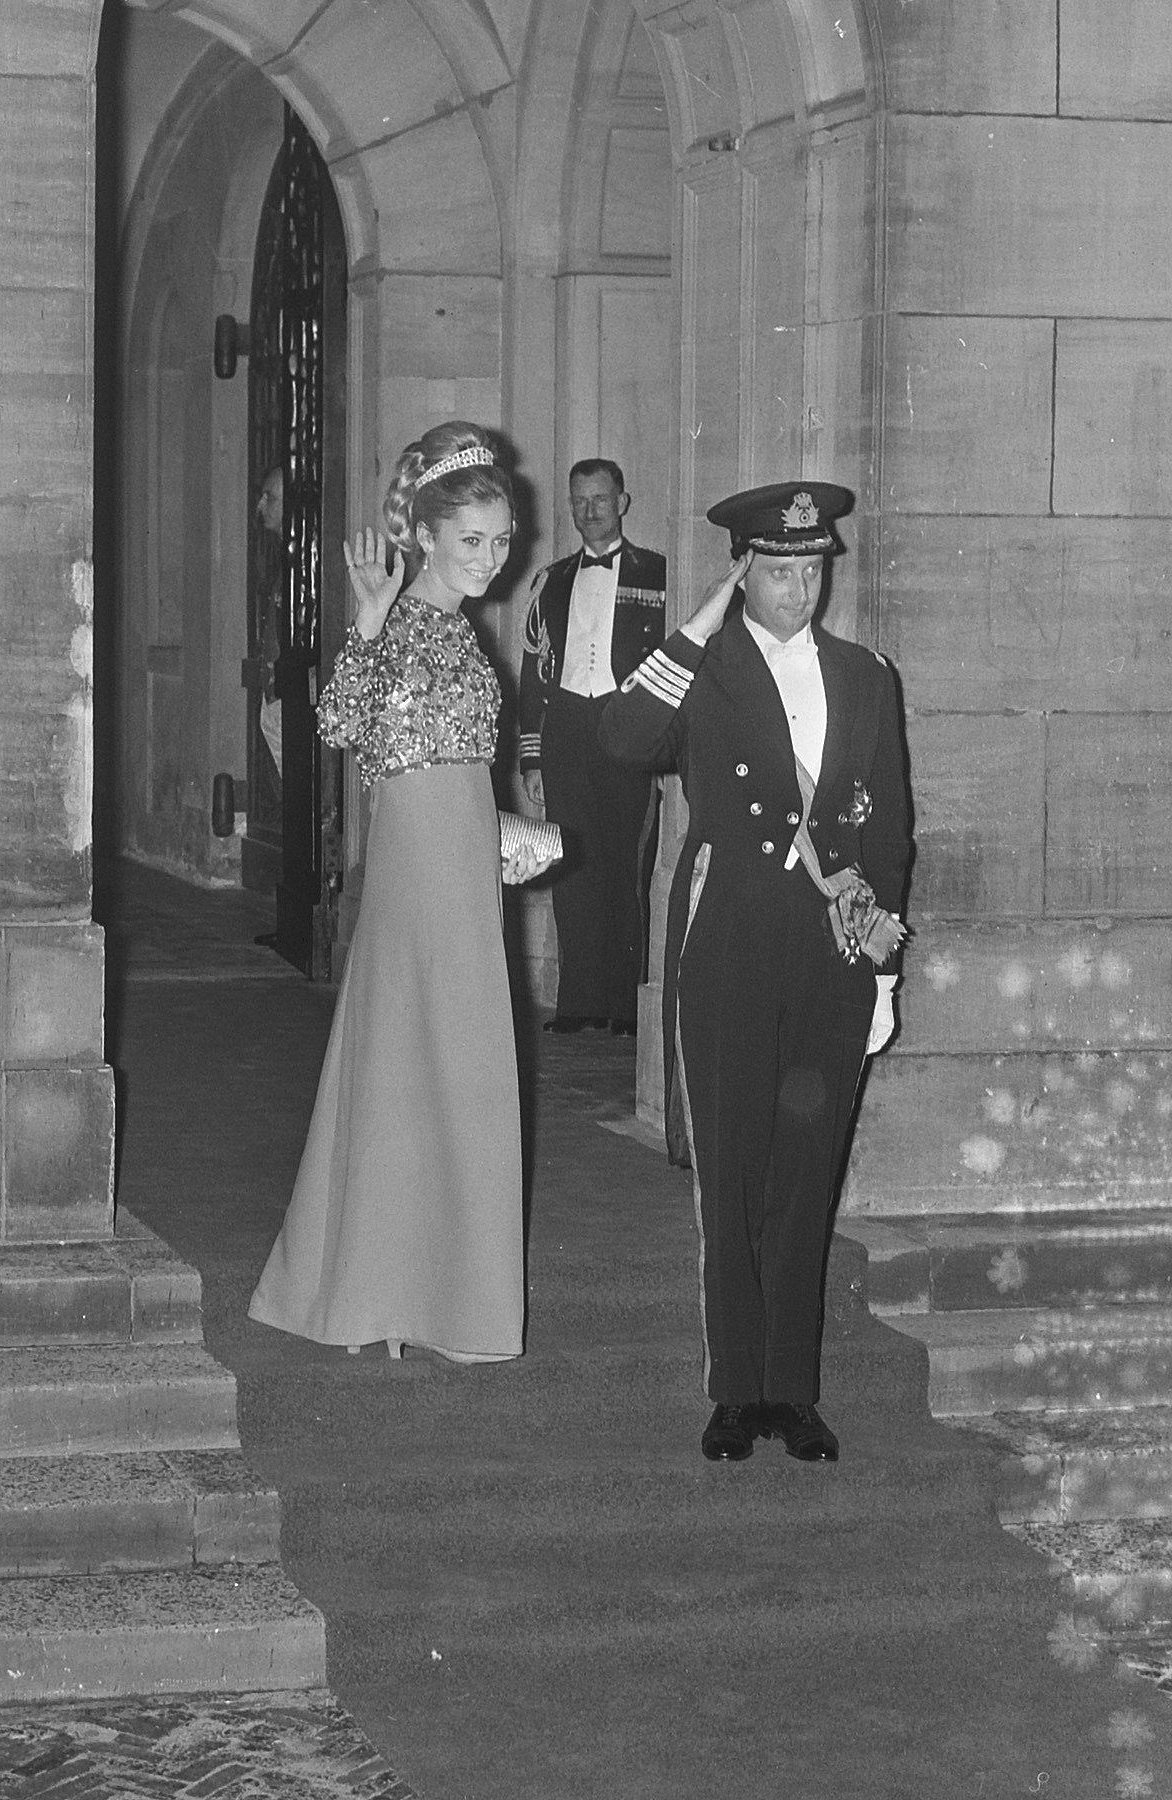 Prince Albert and Princess Paola attend a pre-wedding ball for Princess Beatrix and Prince Claus of the Netherlands, March 1966